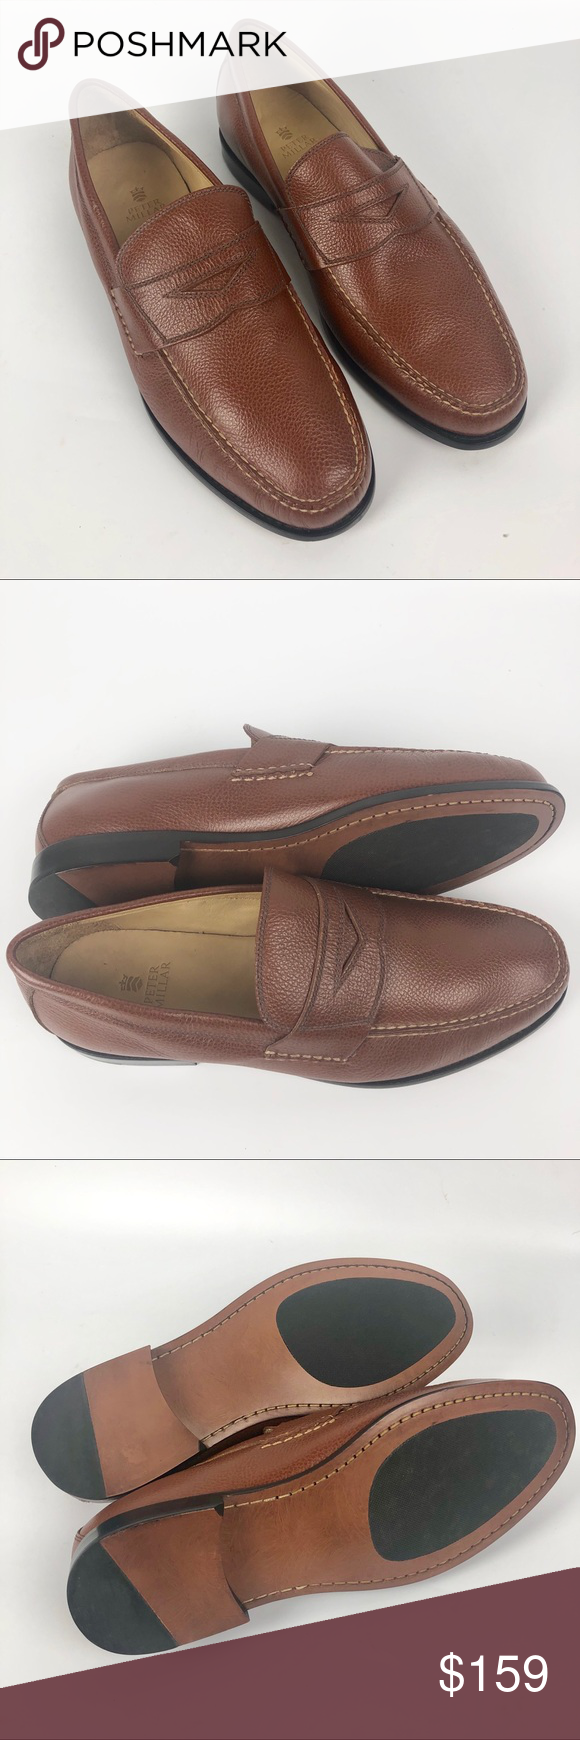 d7335626e38 I just added this listing on Poshmark  Peter Millar size 9 NWOB penny  loafer shoes